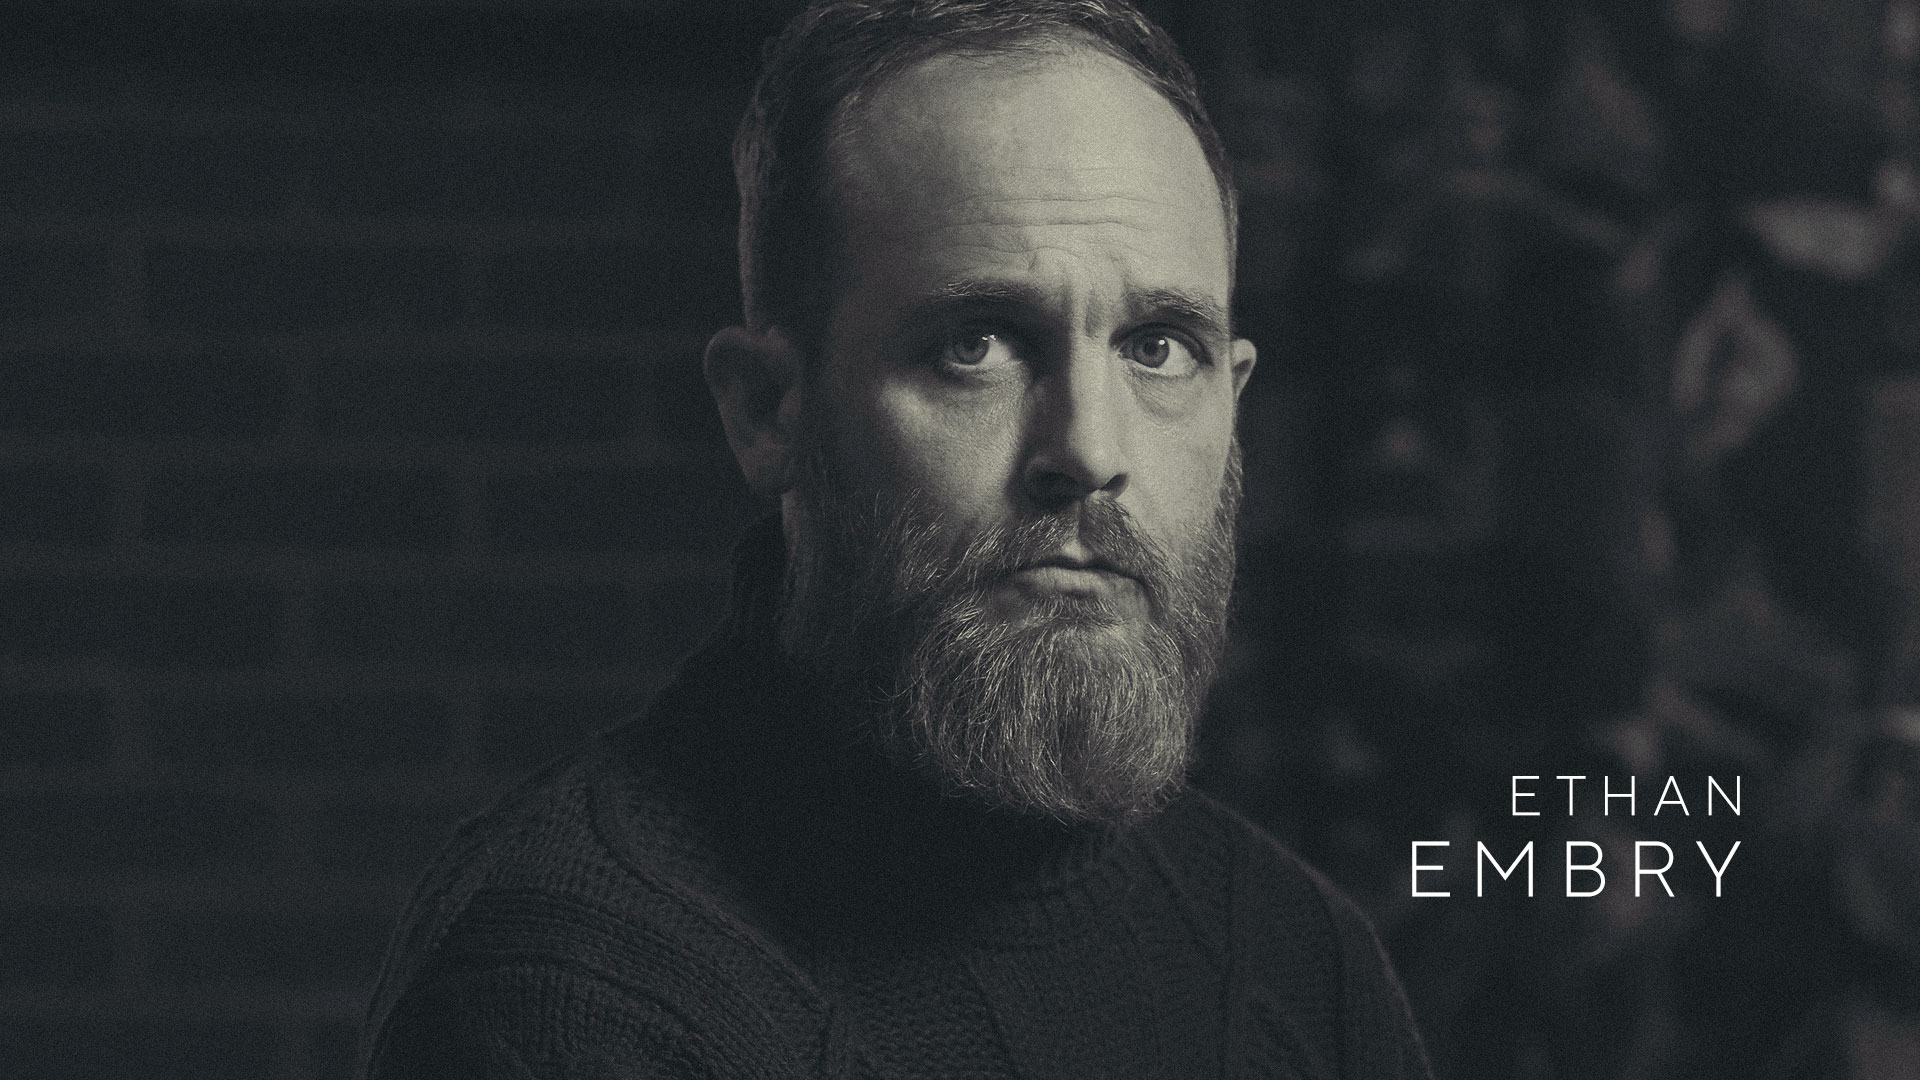 Ethan Embry as Harry in